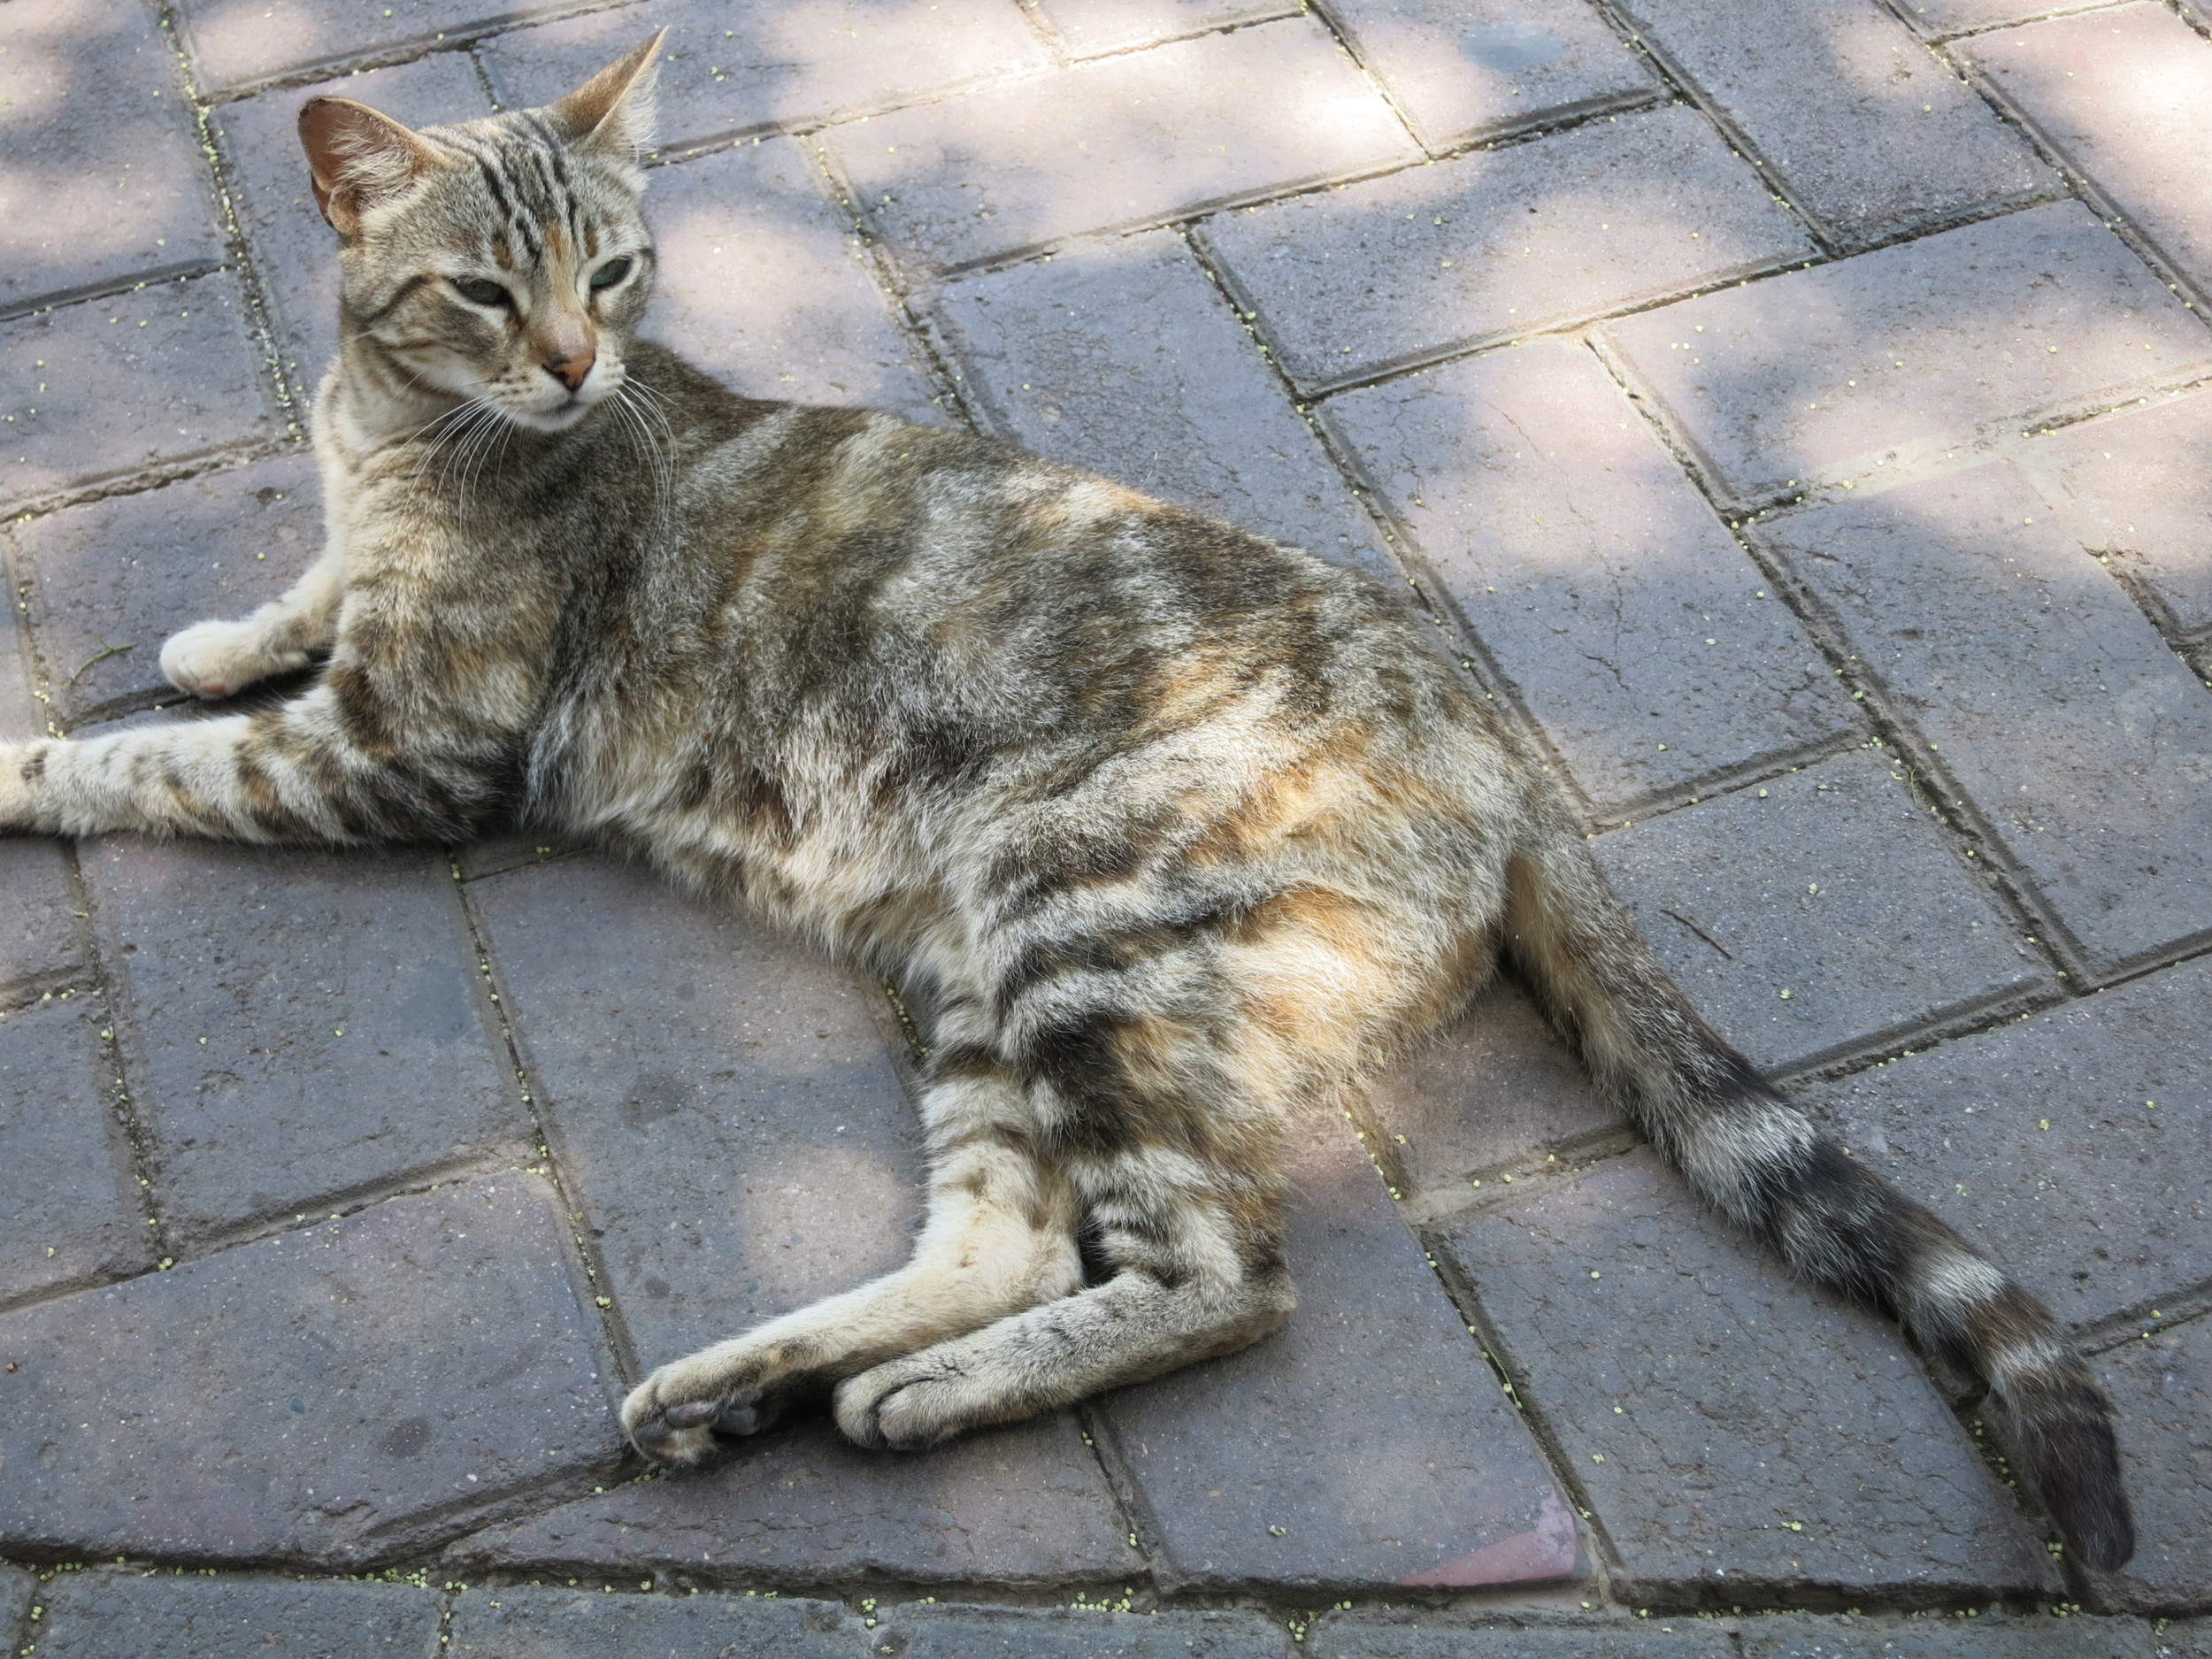 One of the many cats - this one reminded us of our cat Bailey